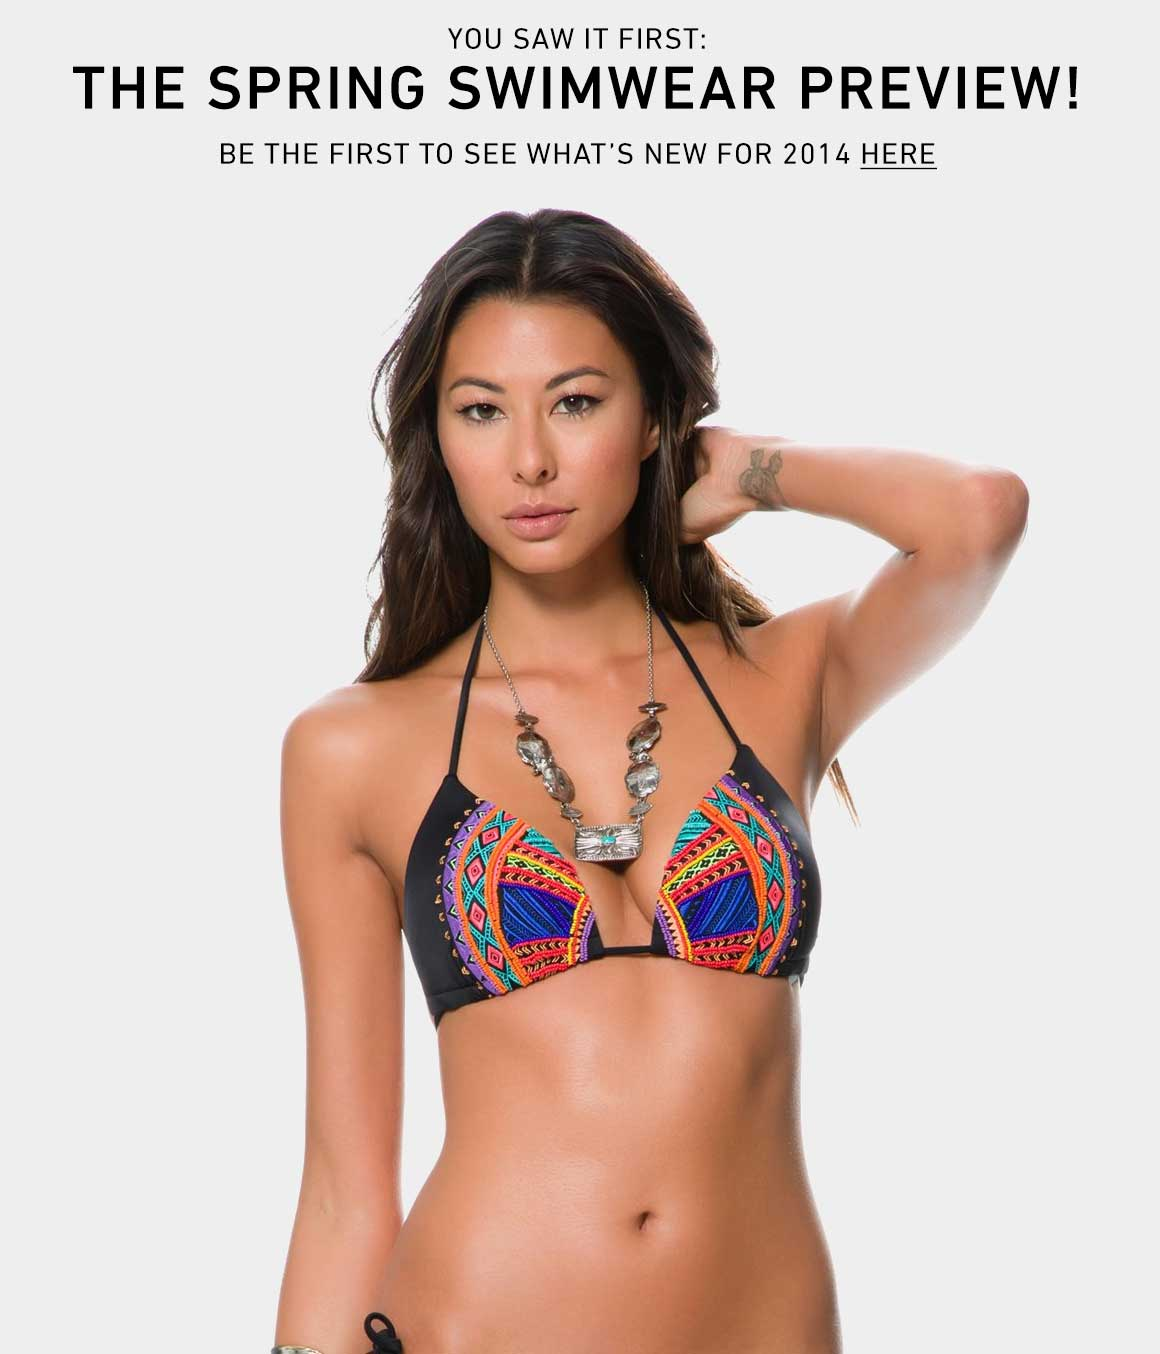 The 2014 Spring Swimwear Preview